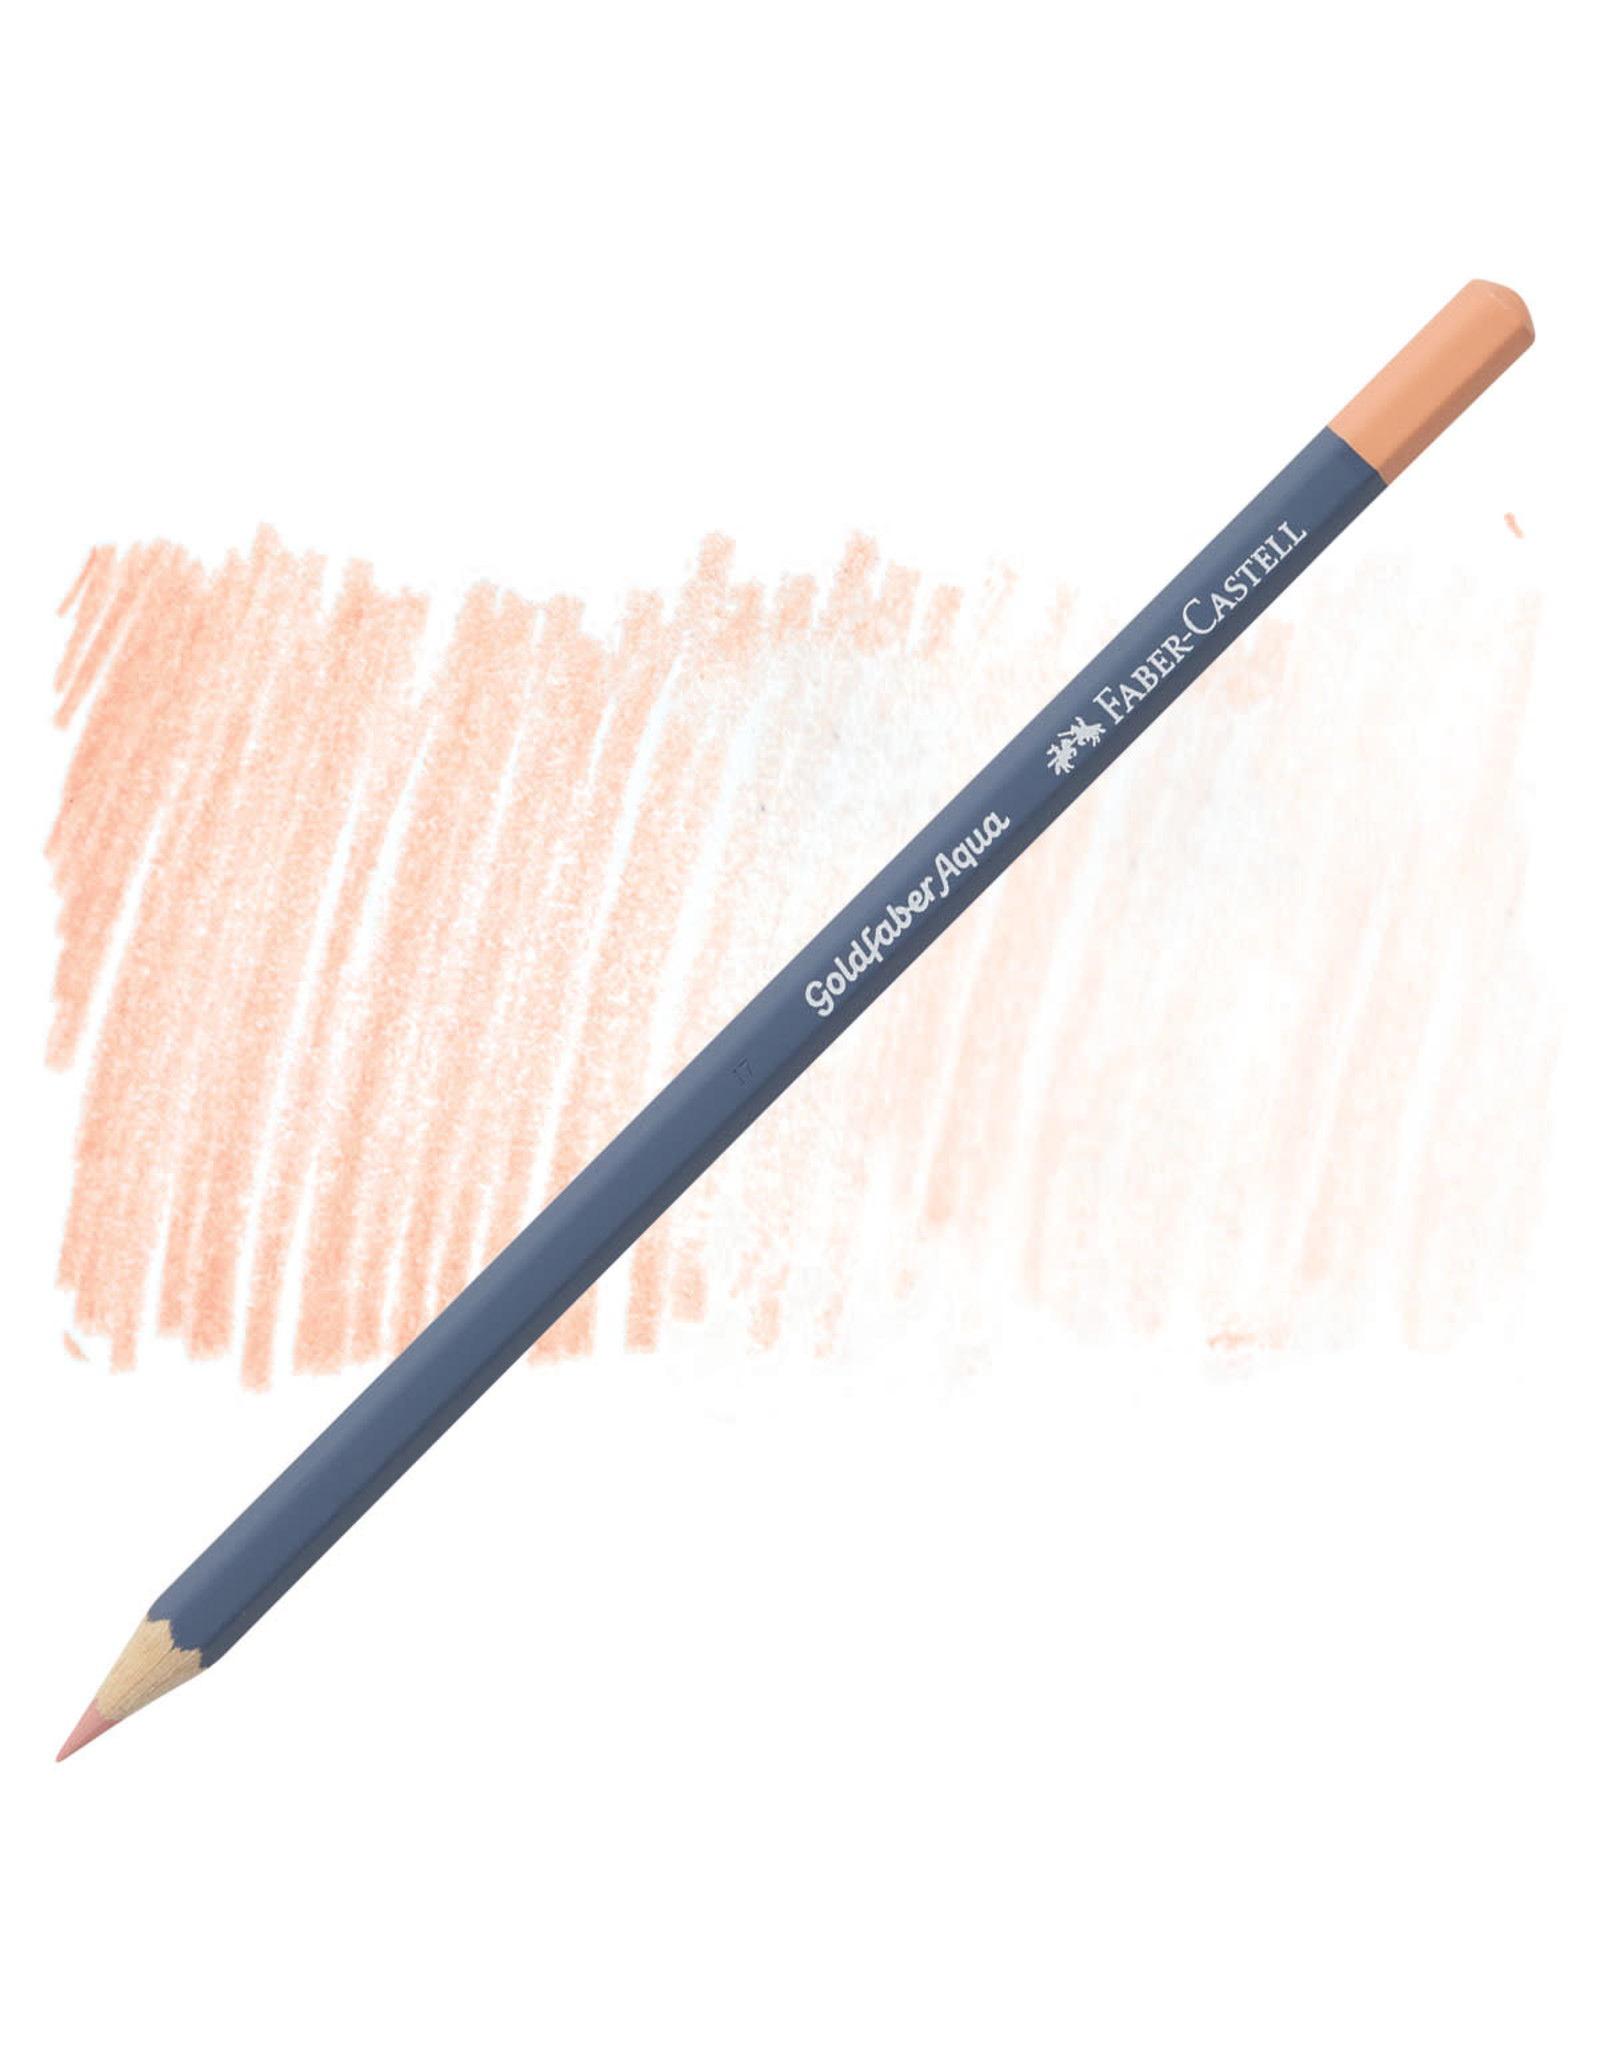 Faber-Castell Goldfaber Aqua Watercolor Pencil - Lt. Flesh #132